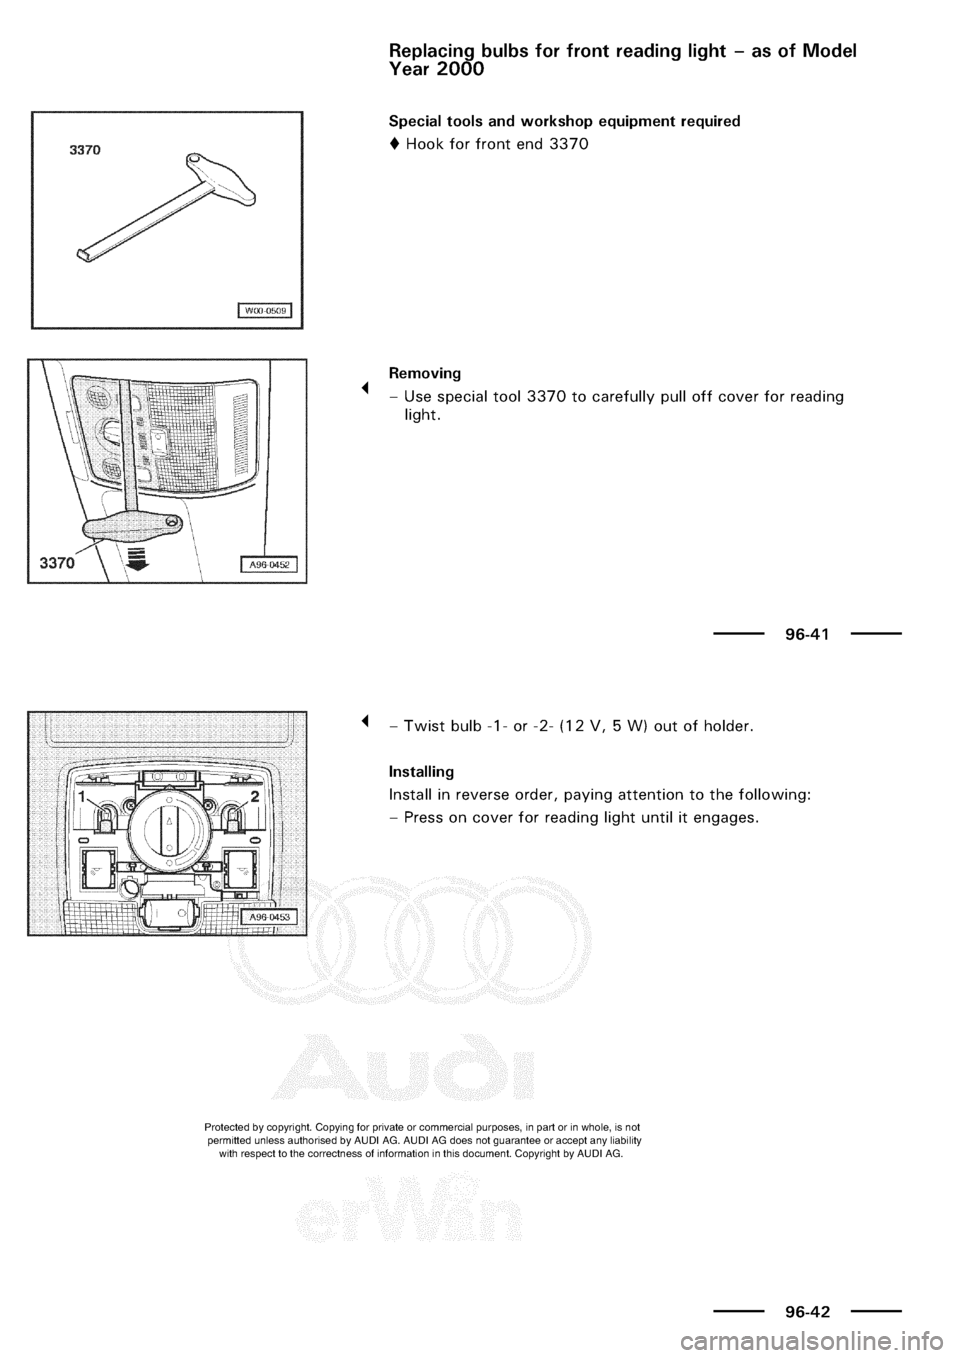 2003 Audi A4 Fuse Box Great Design Of Wiring Diagram Cover Cabriolet Auto 2004